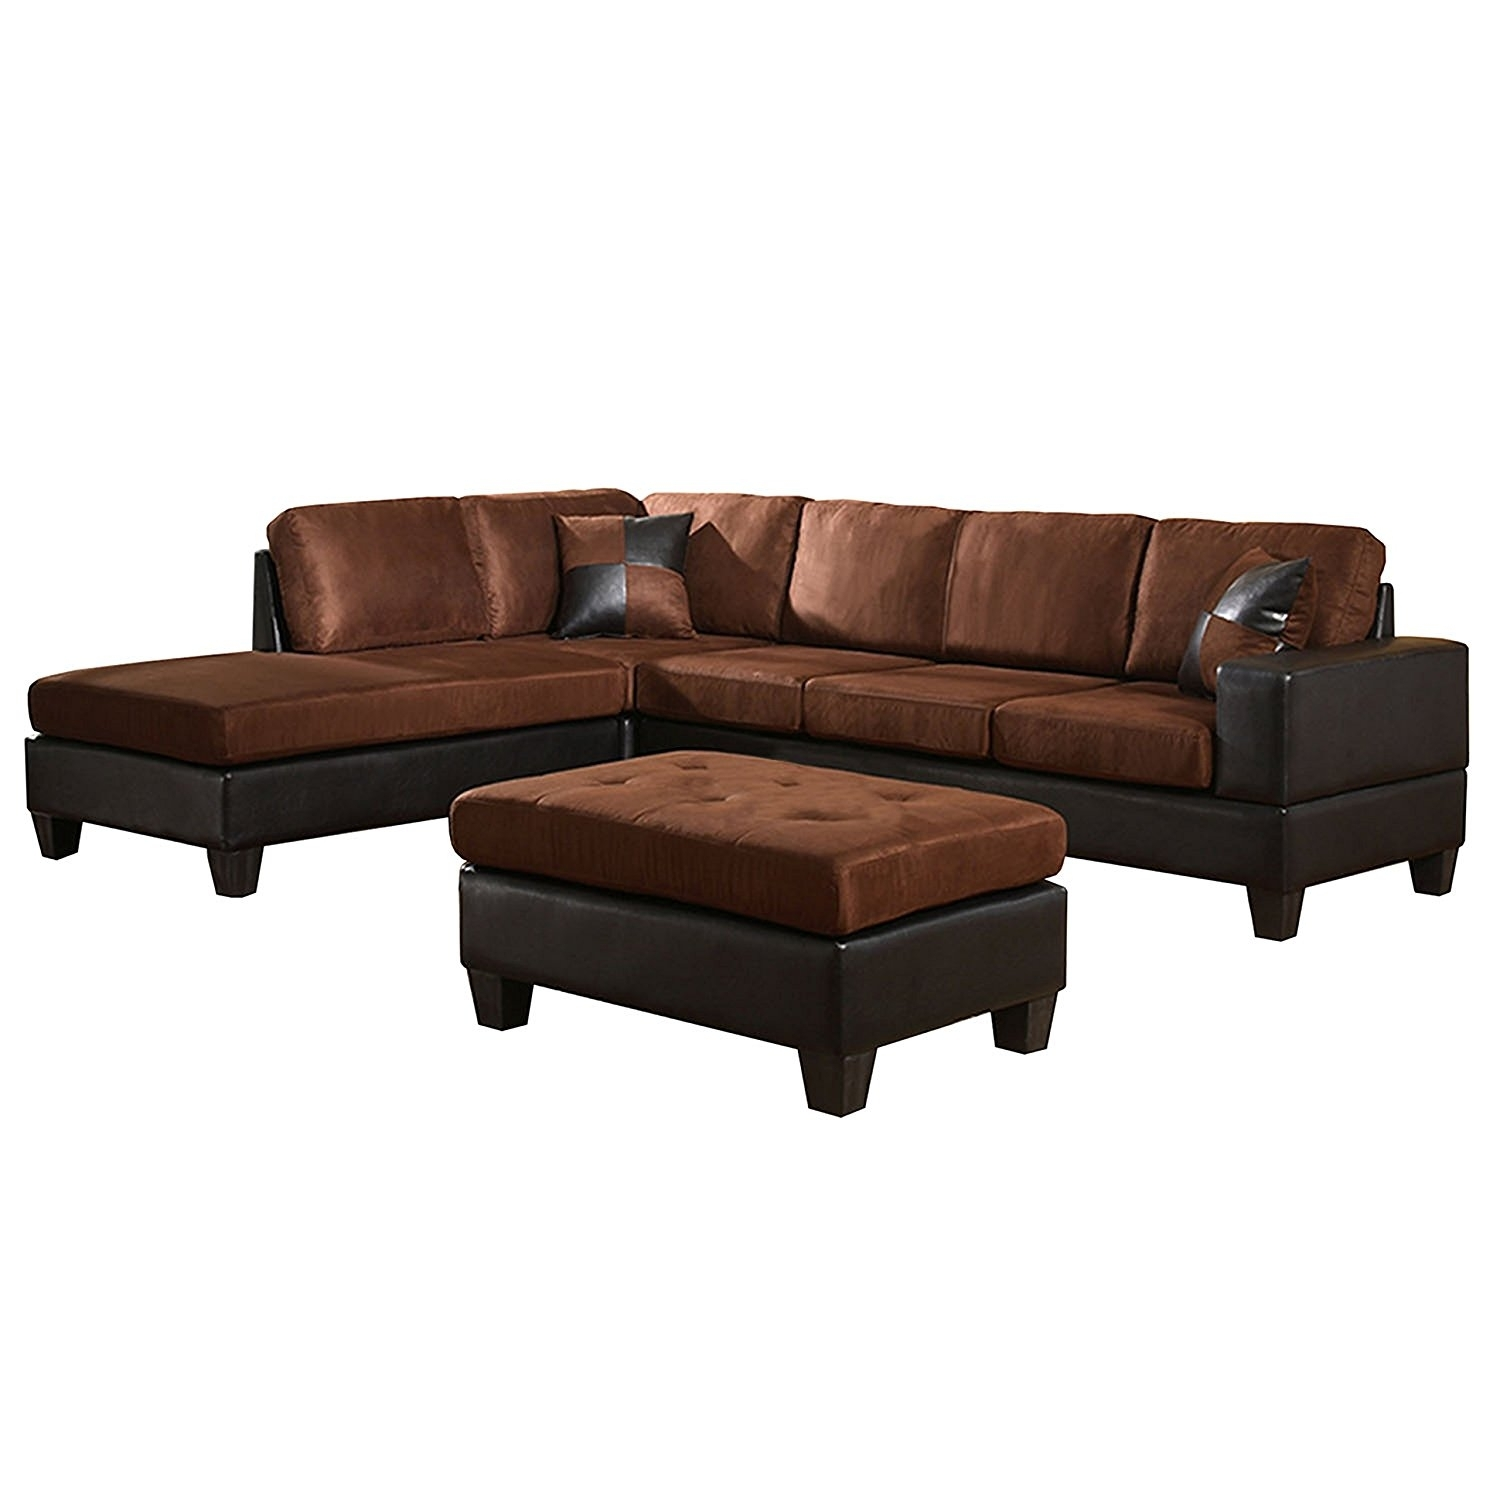 Pride Sierra Microfiber Sectional Sofa With Ott Couch Storage Left With Delano Smoke 3 Piece Sectionals (View 19 of 25)